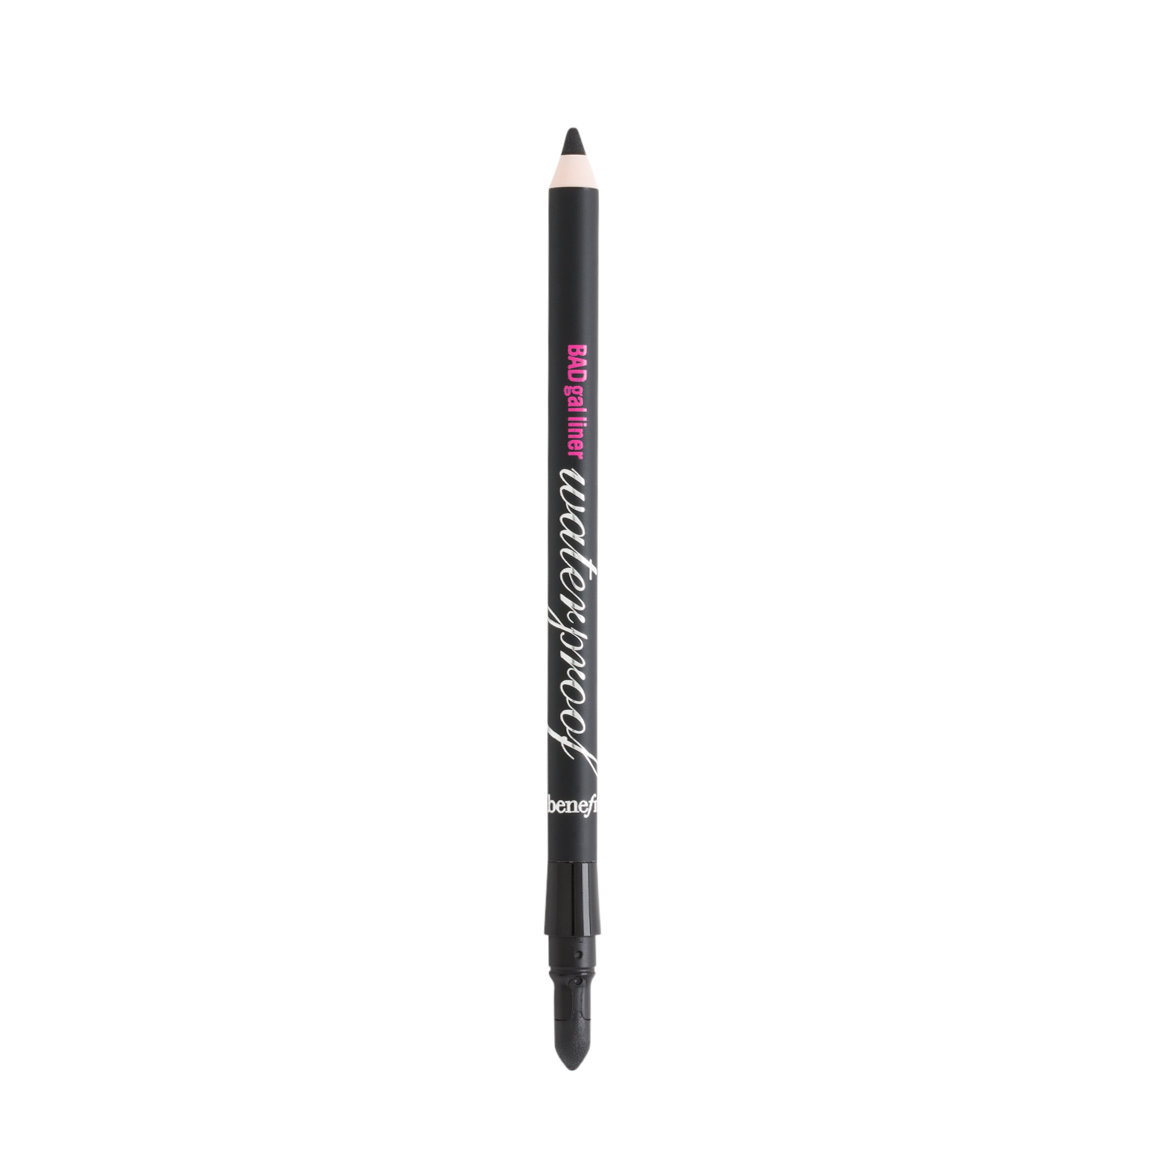 Benefit Cosmetics BADgal Waterproof Eyeliner